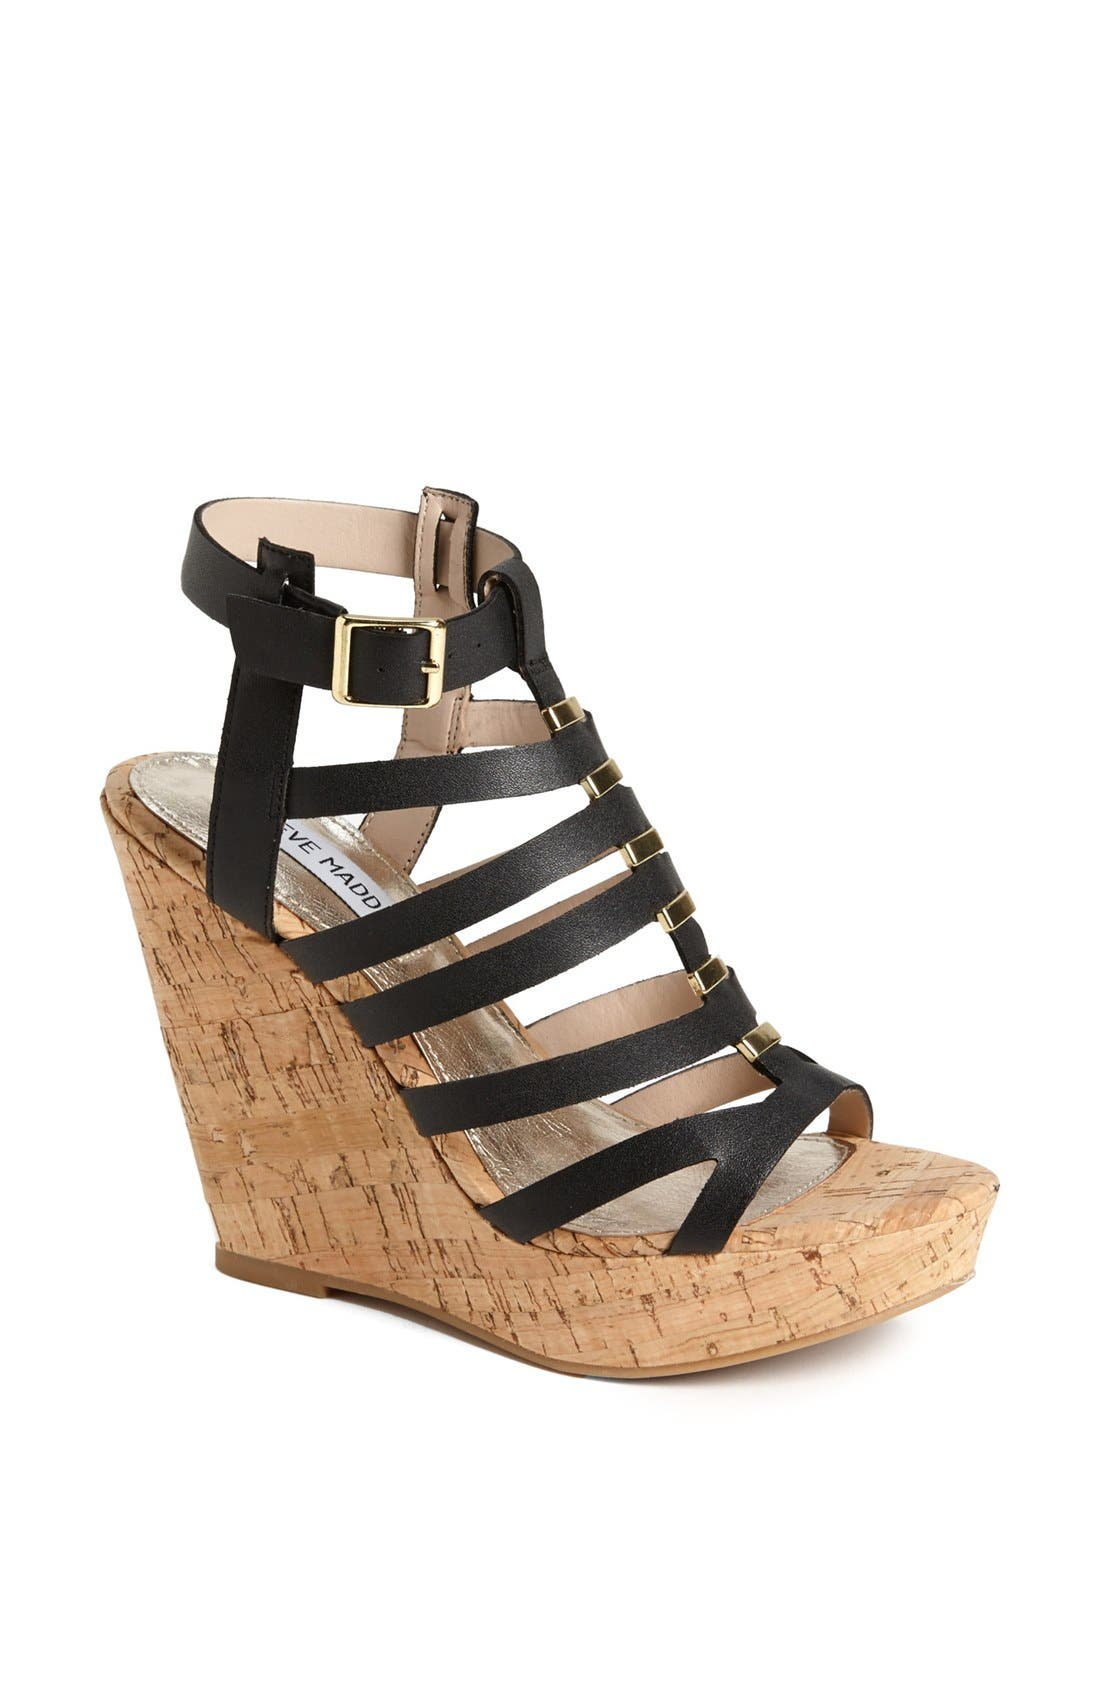 Alternate Image 1 Selected - Steve Madden 'Indyanna' Wedge Sandal